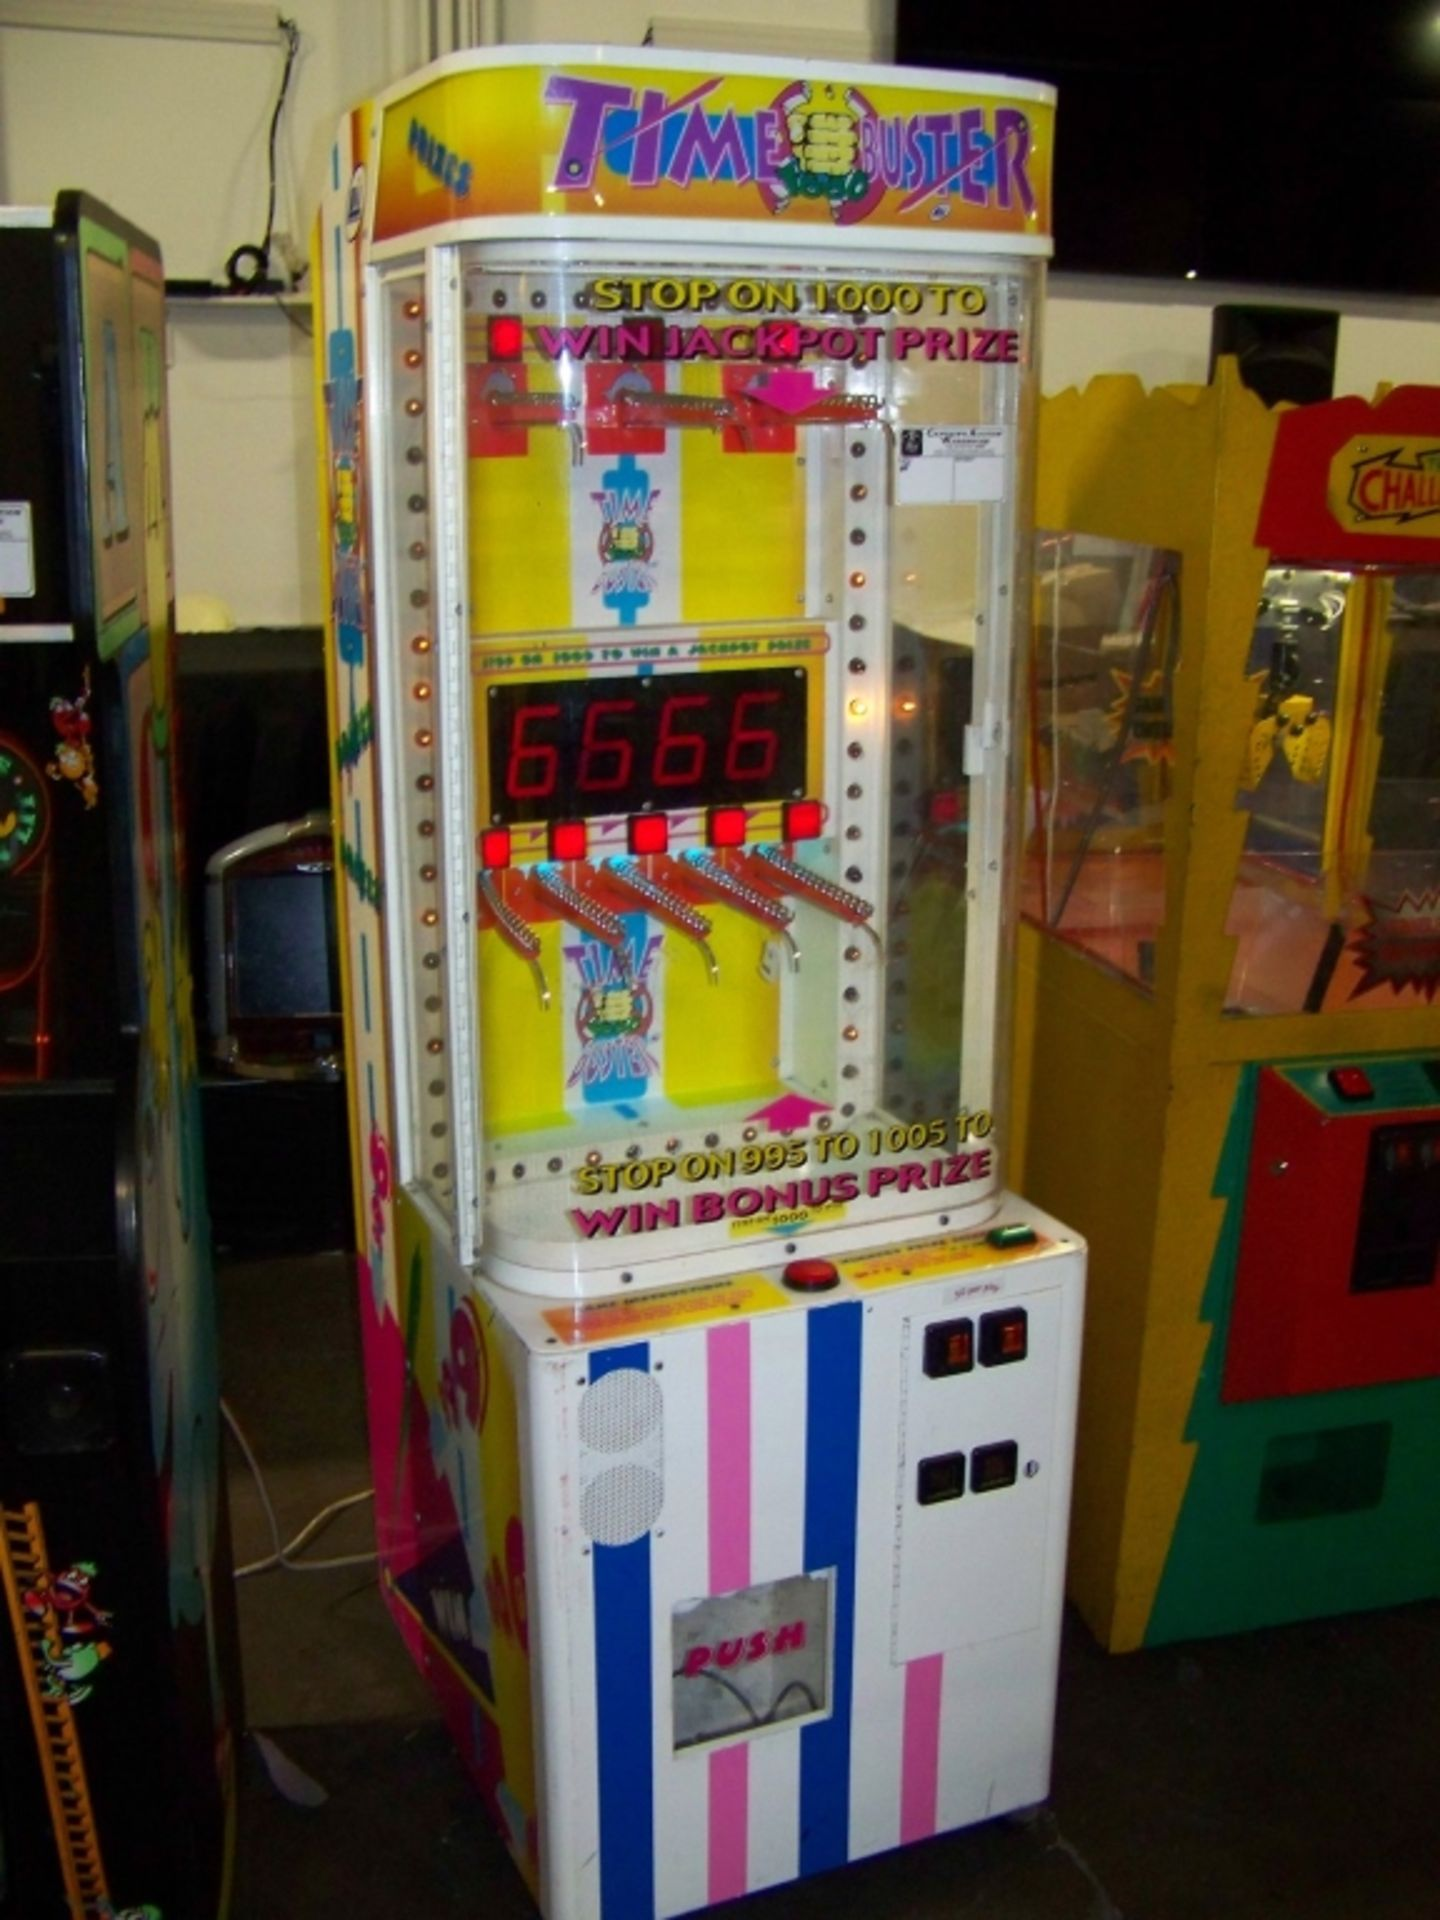 TIME BUSTERS PRIZE REDEMPTION GAME LAI GAMES